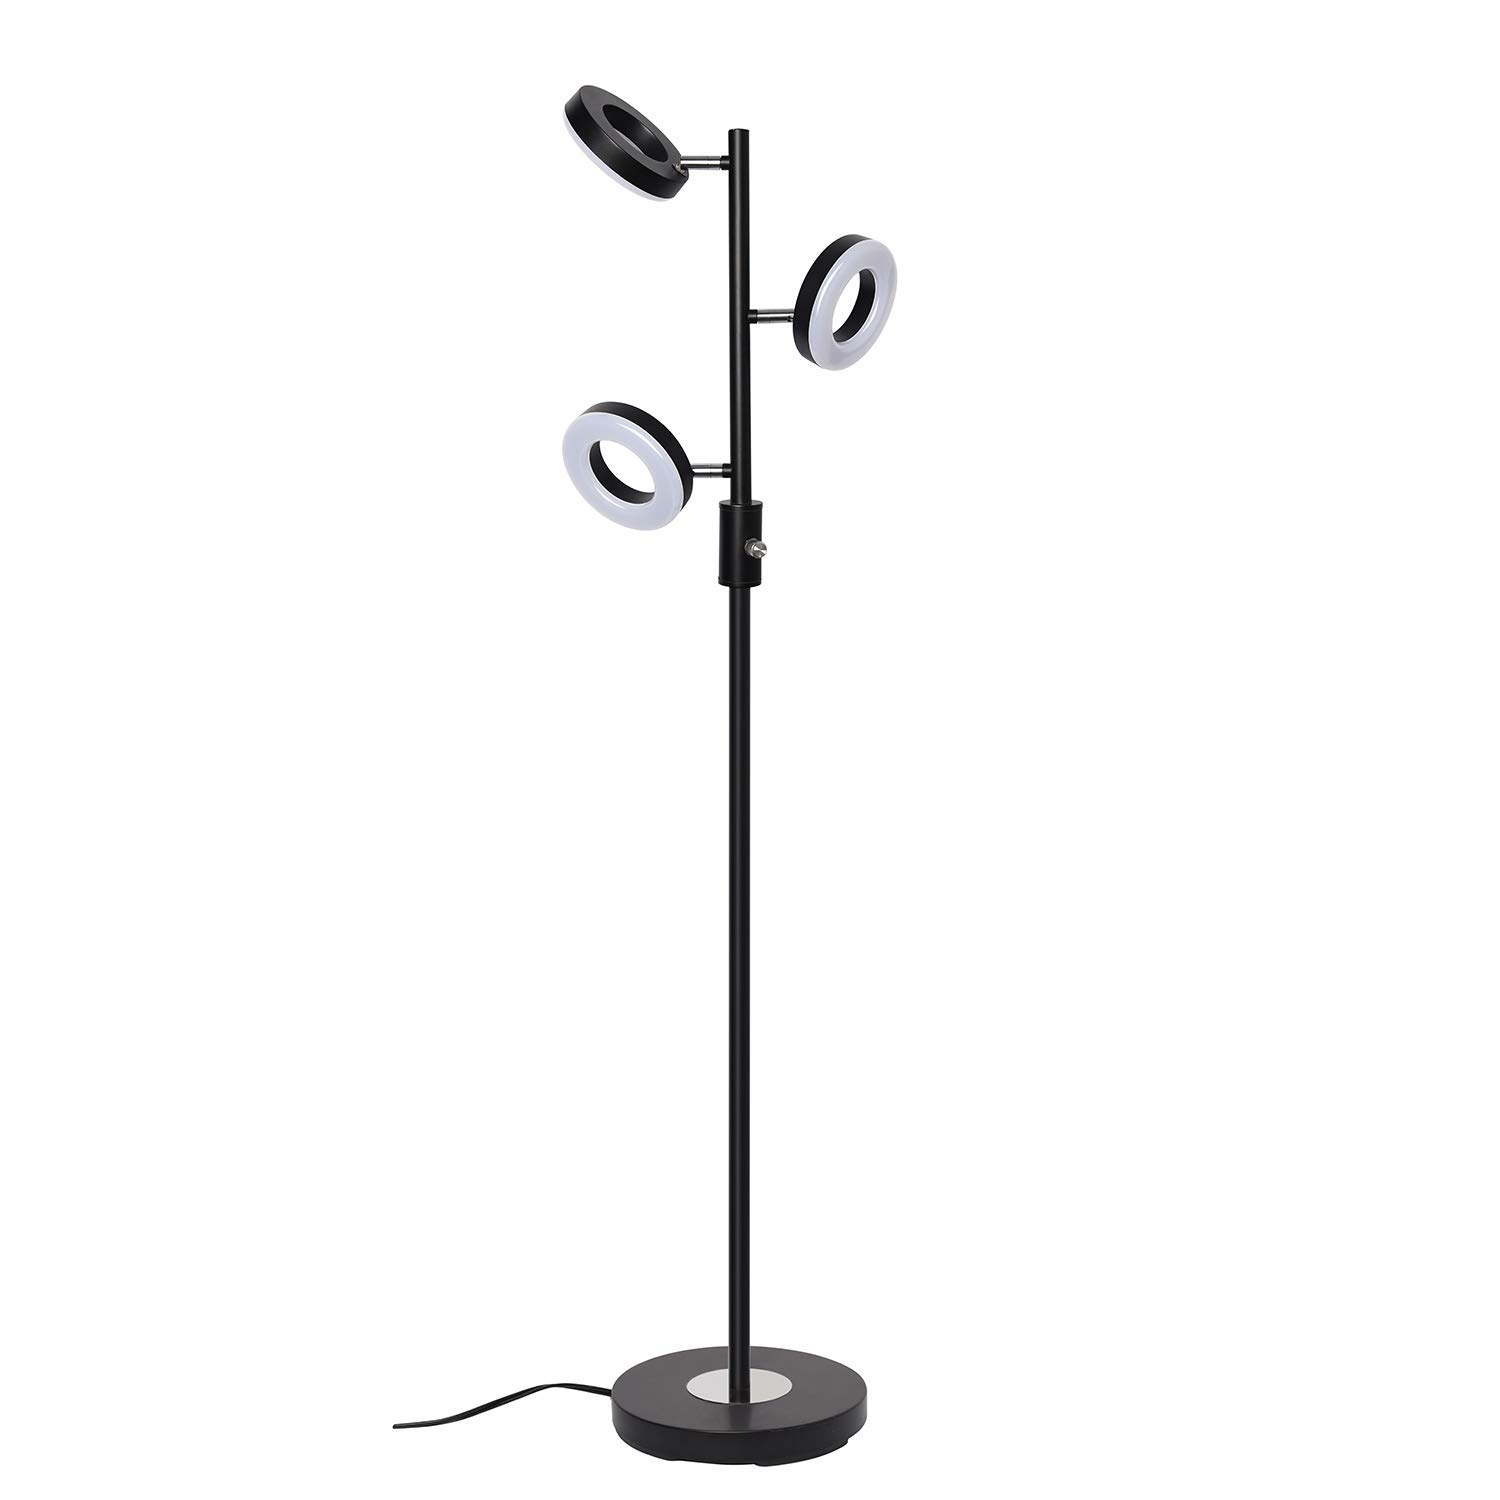 SUNLLIPE 3 Lights Floor Lamp Adjustable Stand Lamp